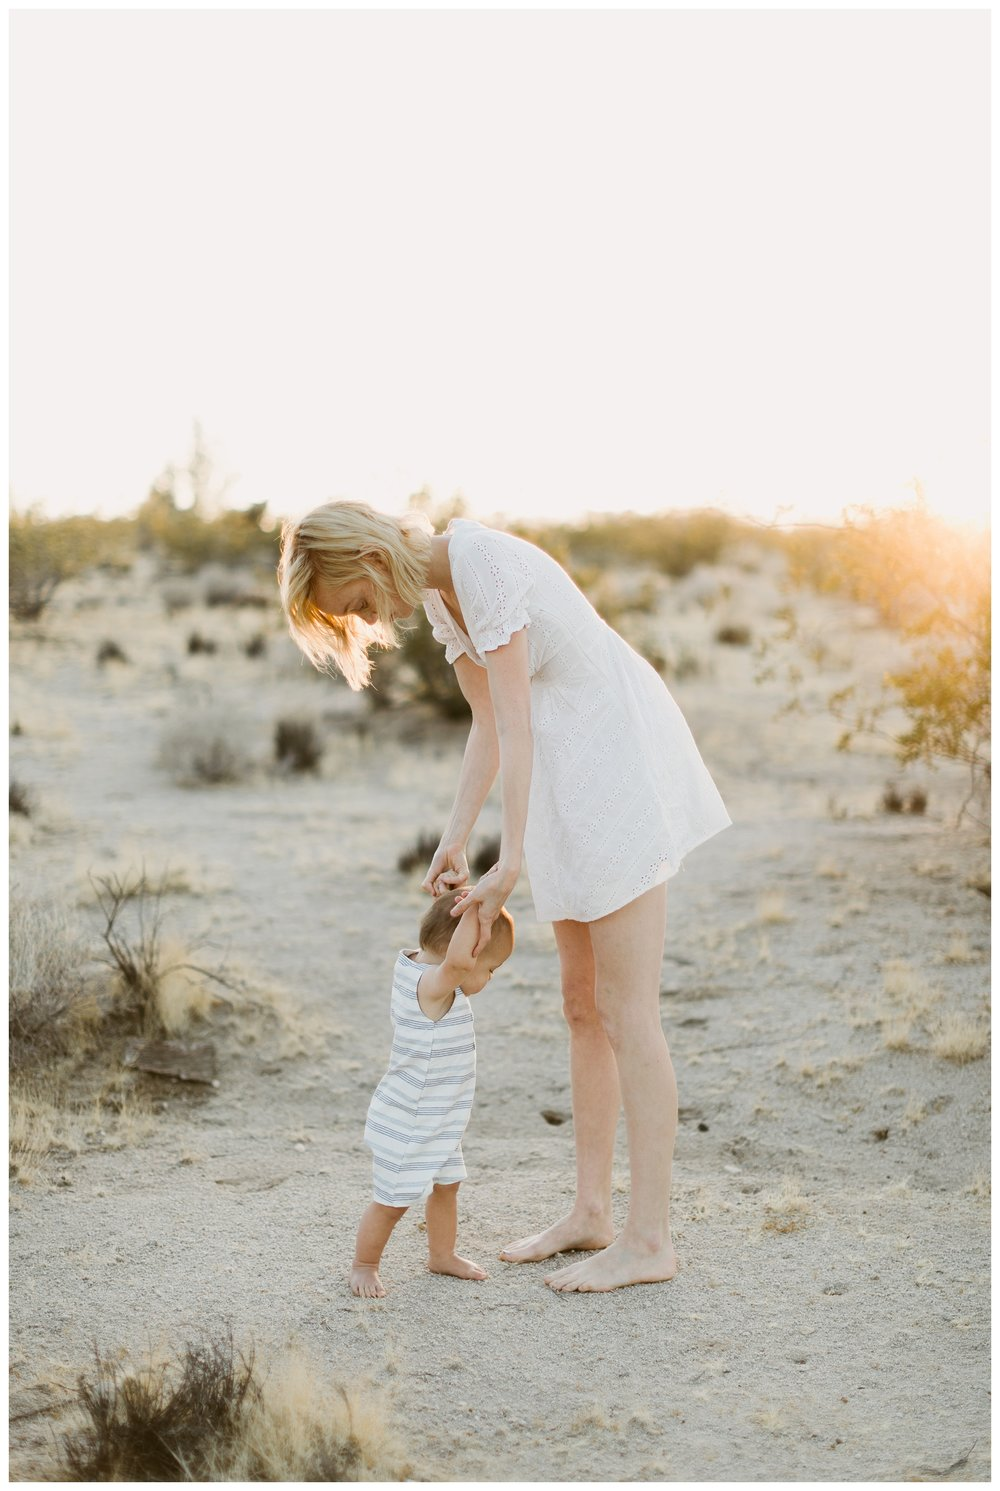 rhi-motherhood-joshua-tree (72 of 113).jpg